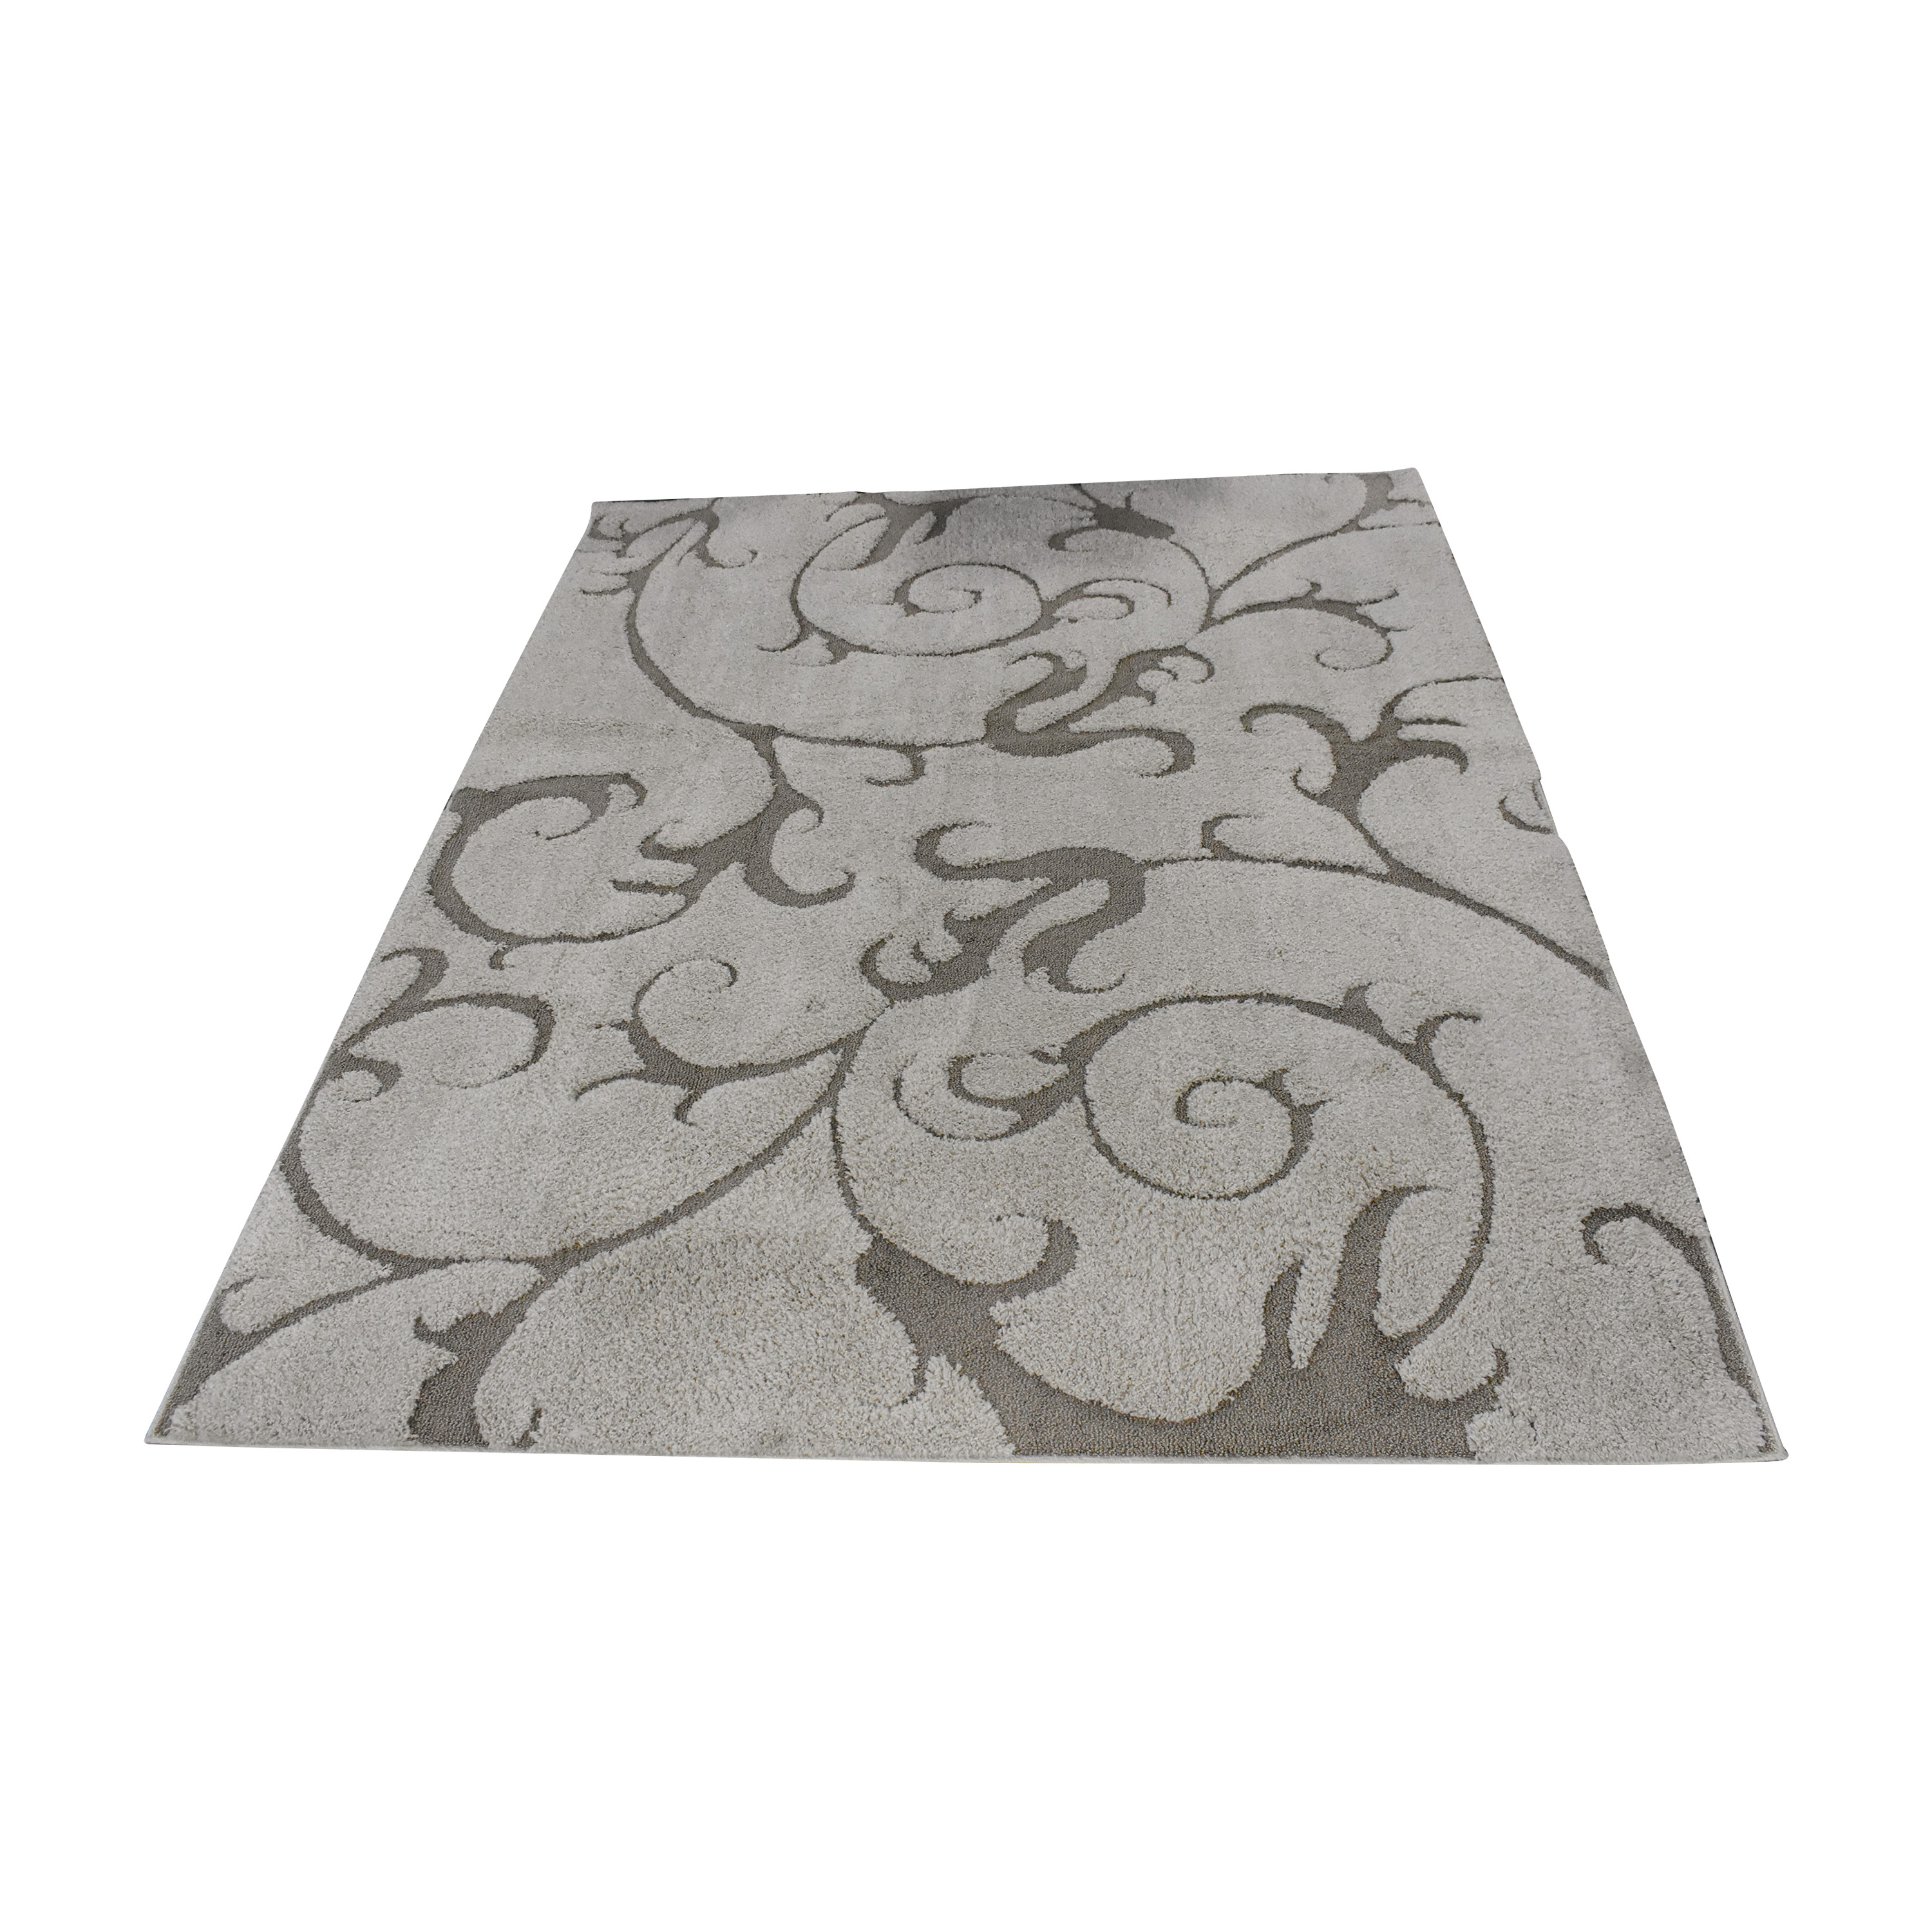 Canyon Furniture Canyon Furniture Patterned Area Rug price